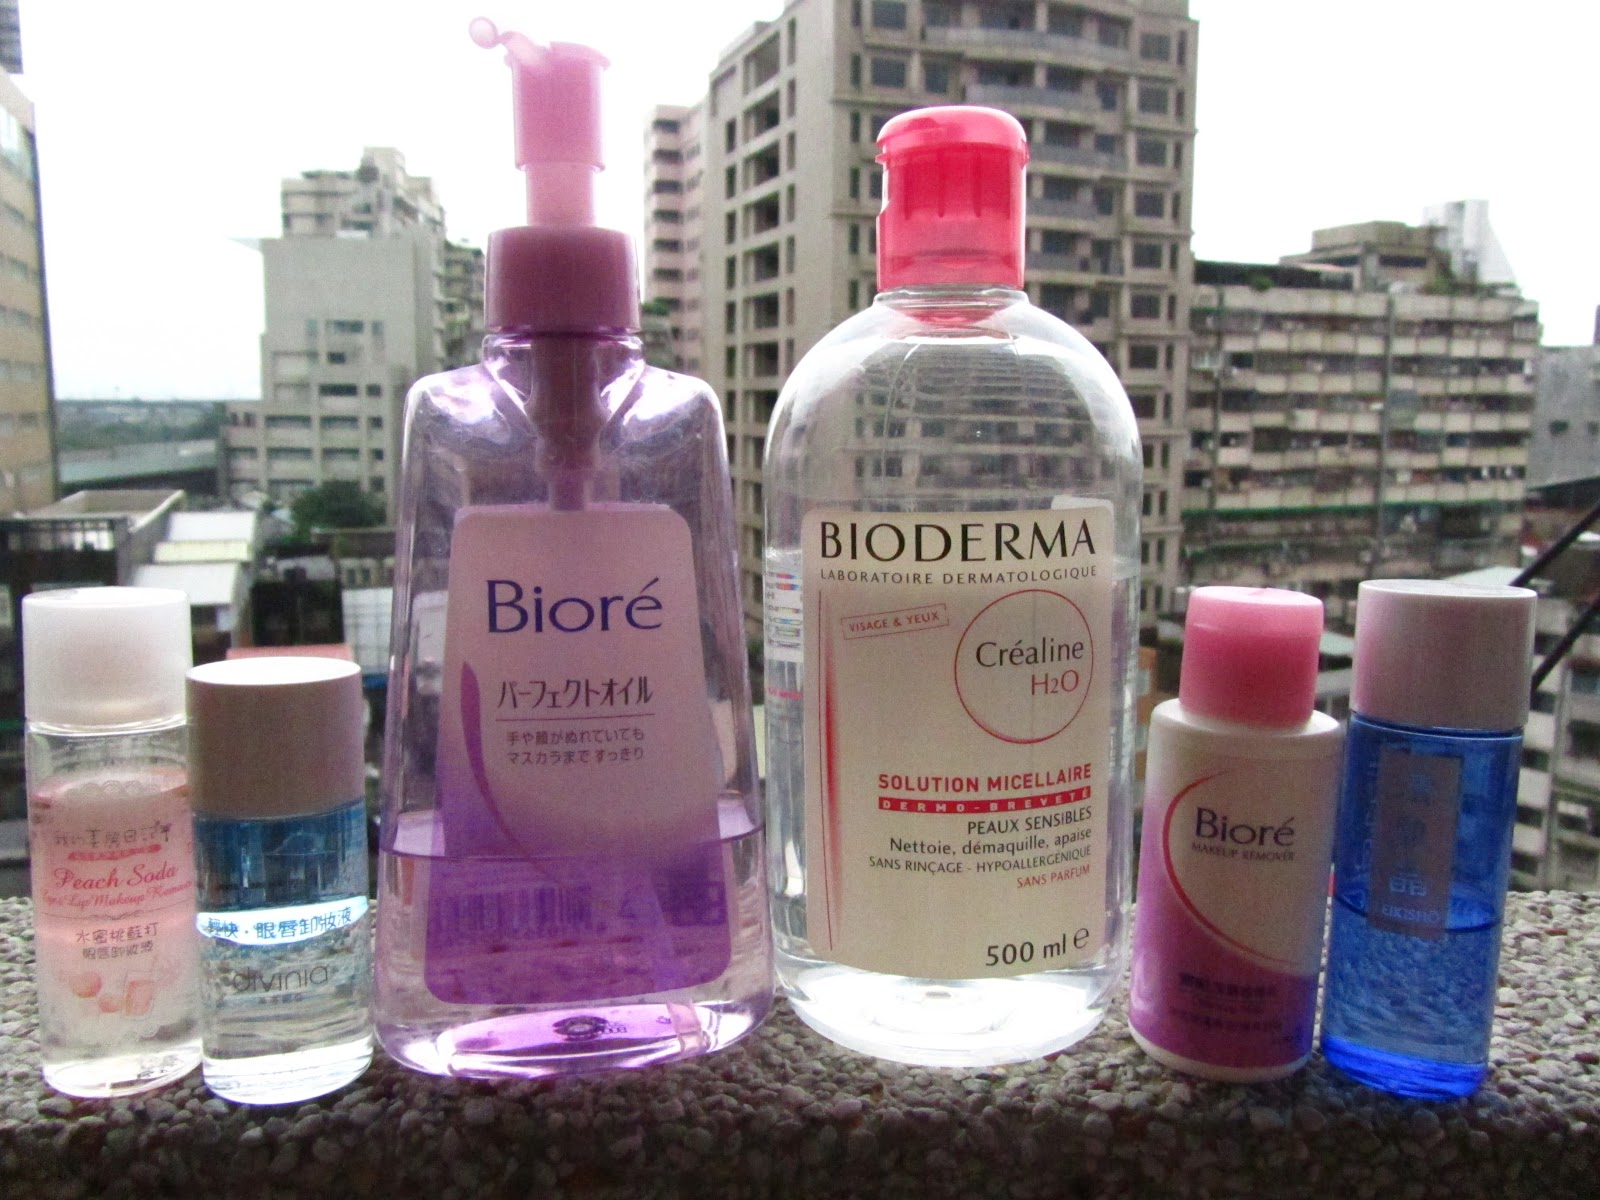 Julez Juliana Make Up Removers Review Biore Bioderma Kose My Cleansing Oil 150ml Remover Beauty Diarypeach Soda Maybelline Divinia